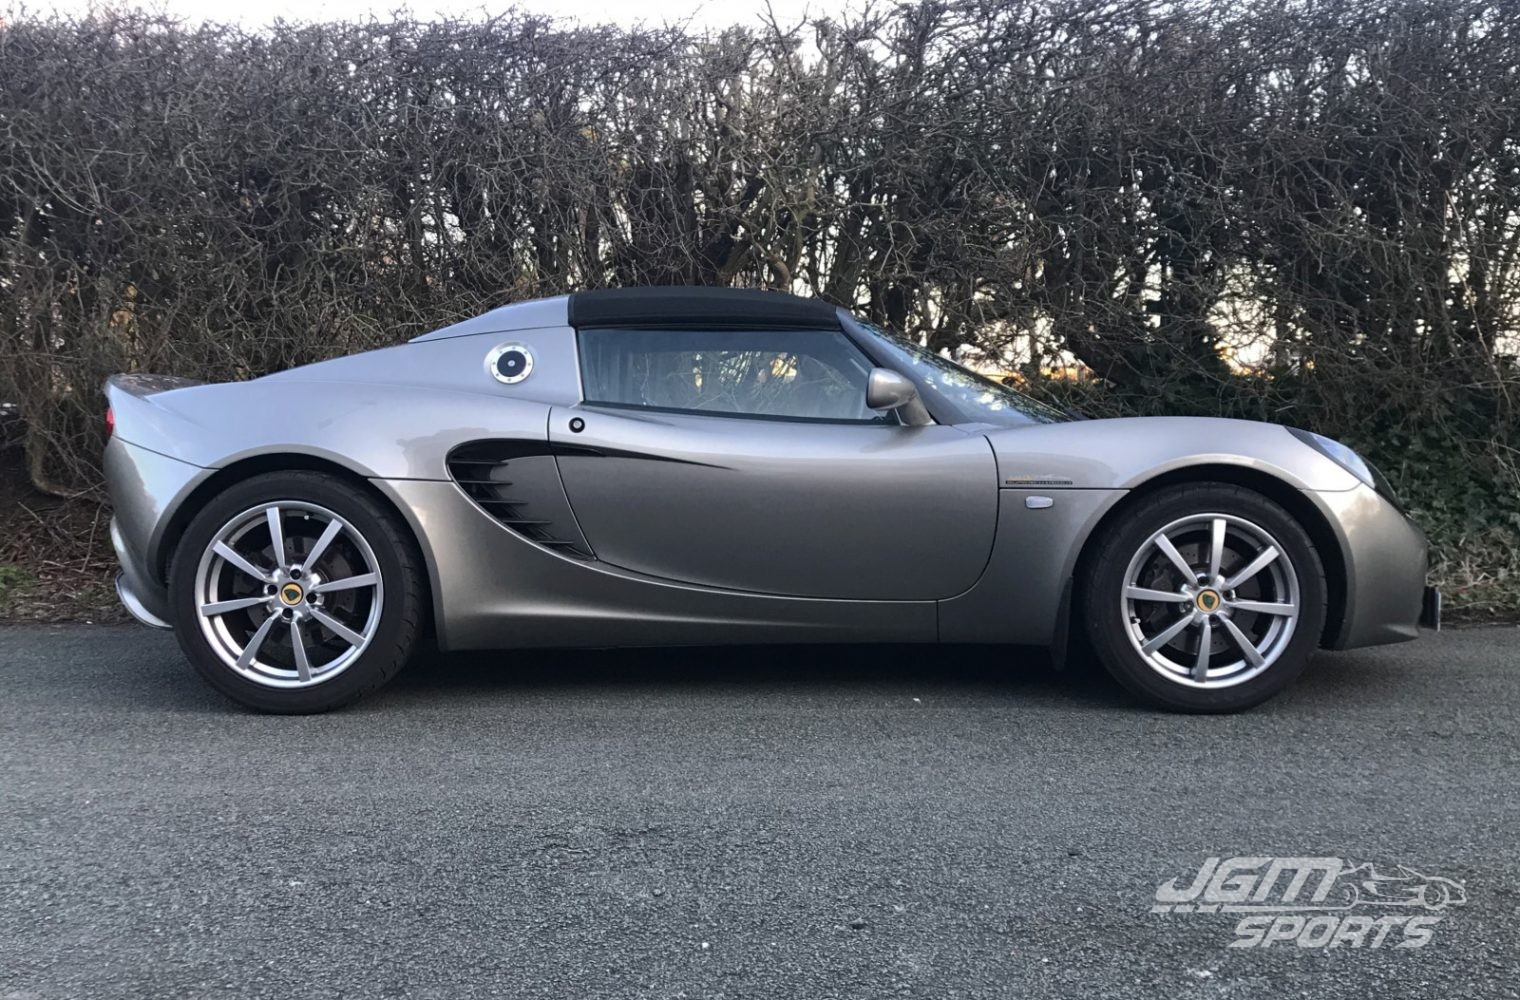 http://www.jgmsports.co.uk/wp-content/uploads/2007-S2-LOTUS-ELISE-R-SUPER-TOURING-SUPERCHARGED-STUNNING-CONDITION-1520x1000.jpg